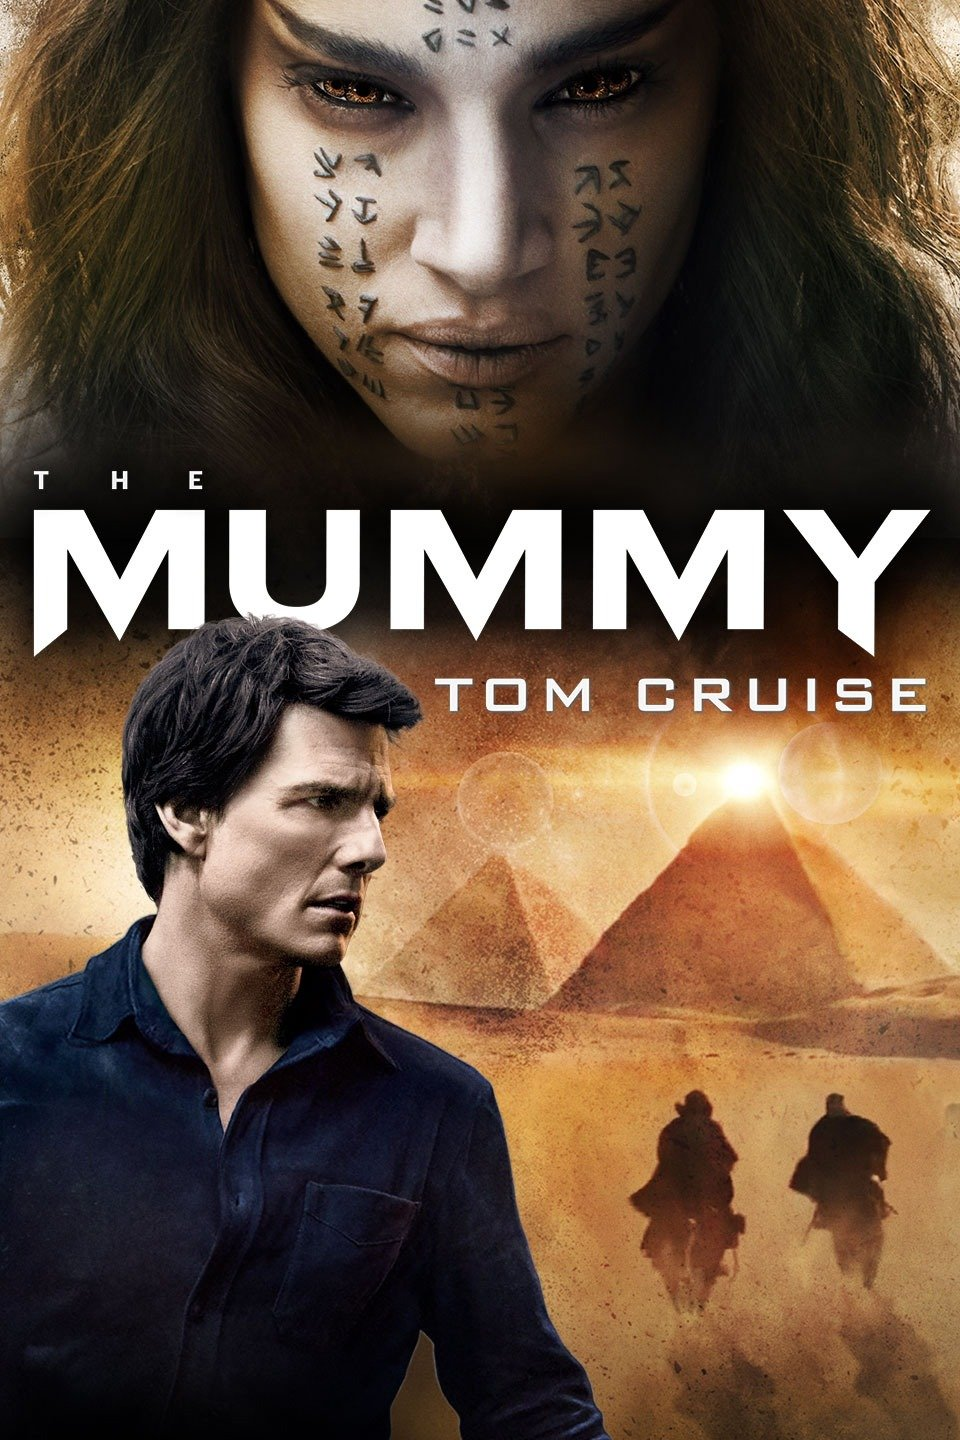 The Mummy Domenichinounicornpalfarneseg